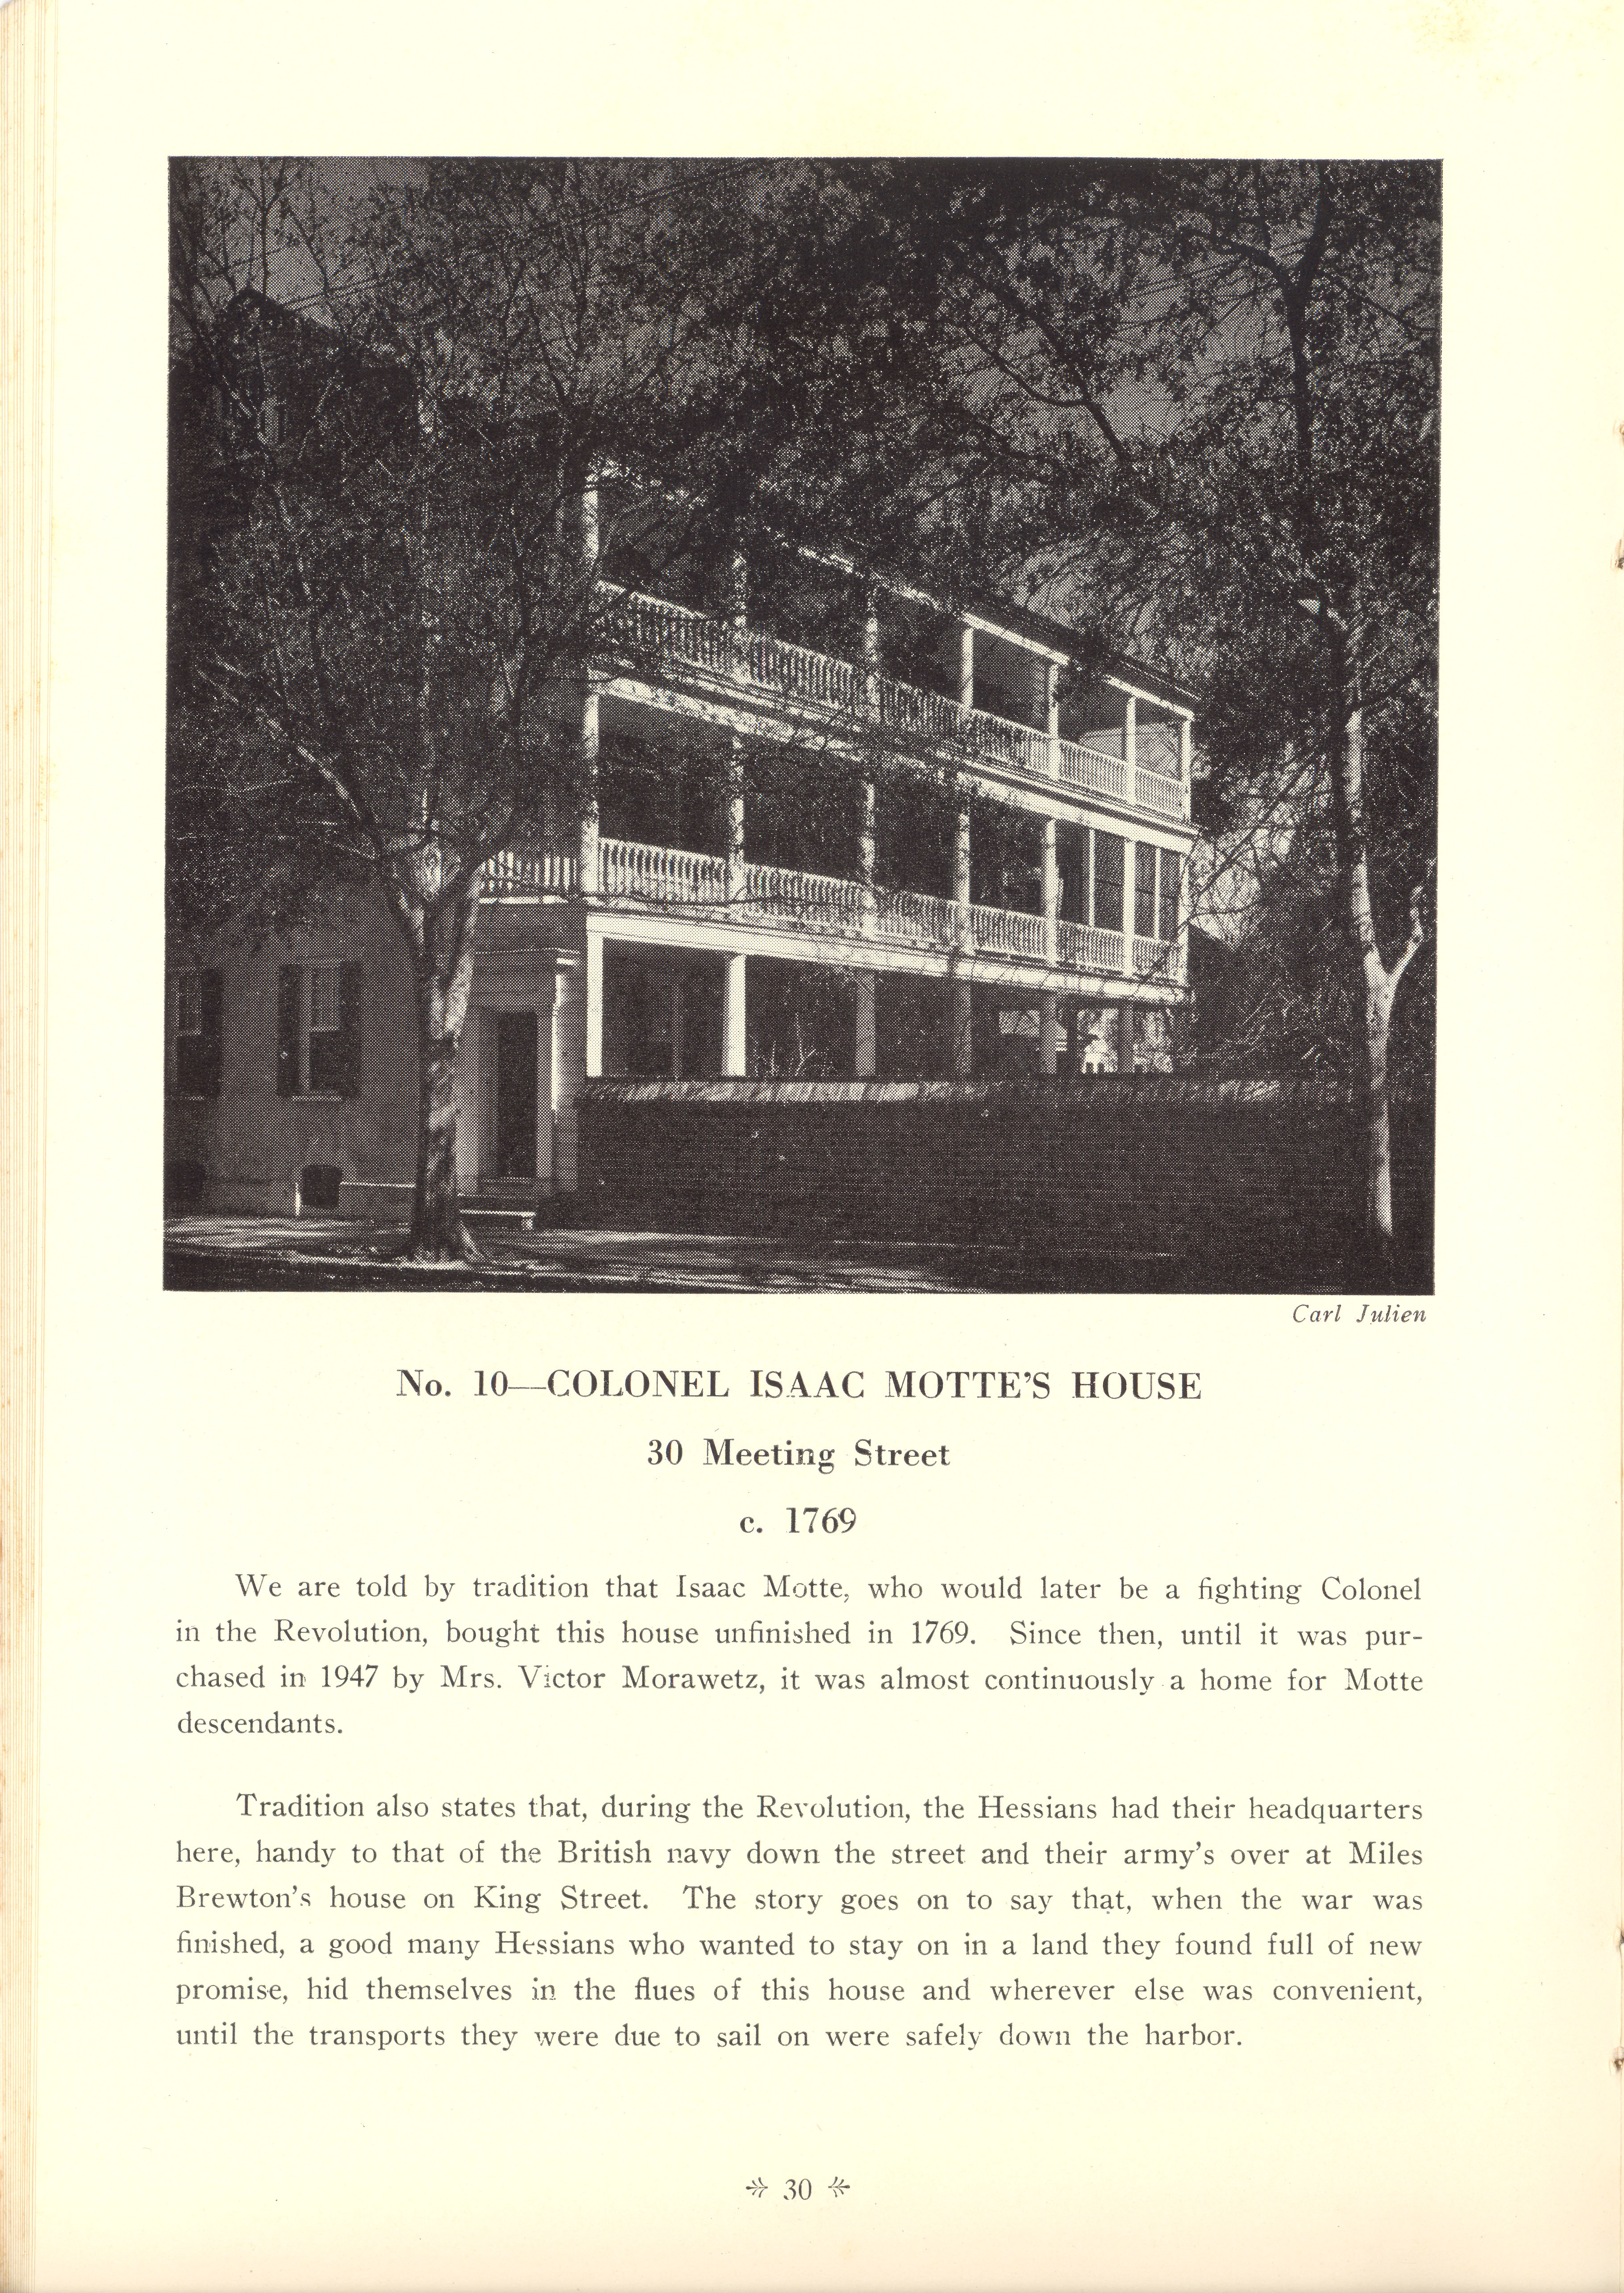 Page 30:  No. 10 - Colonel Isaac Motte's House, 30 Meeting Street, c. 1769